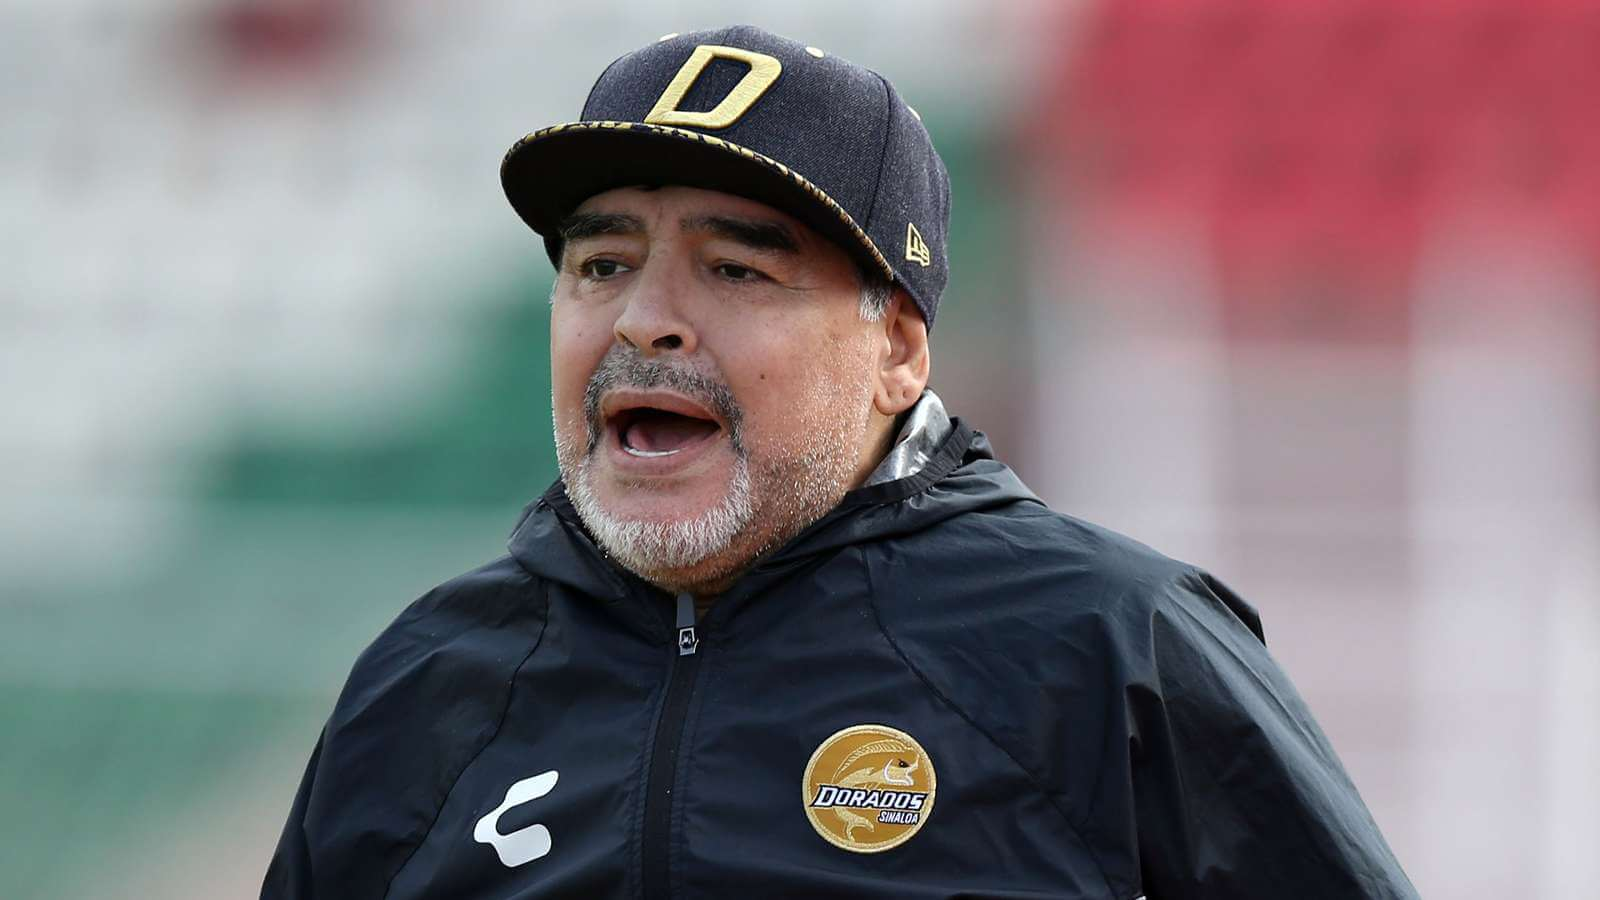 Maradona open to Dorados stay if requests met